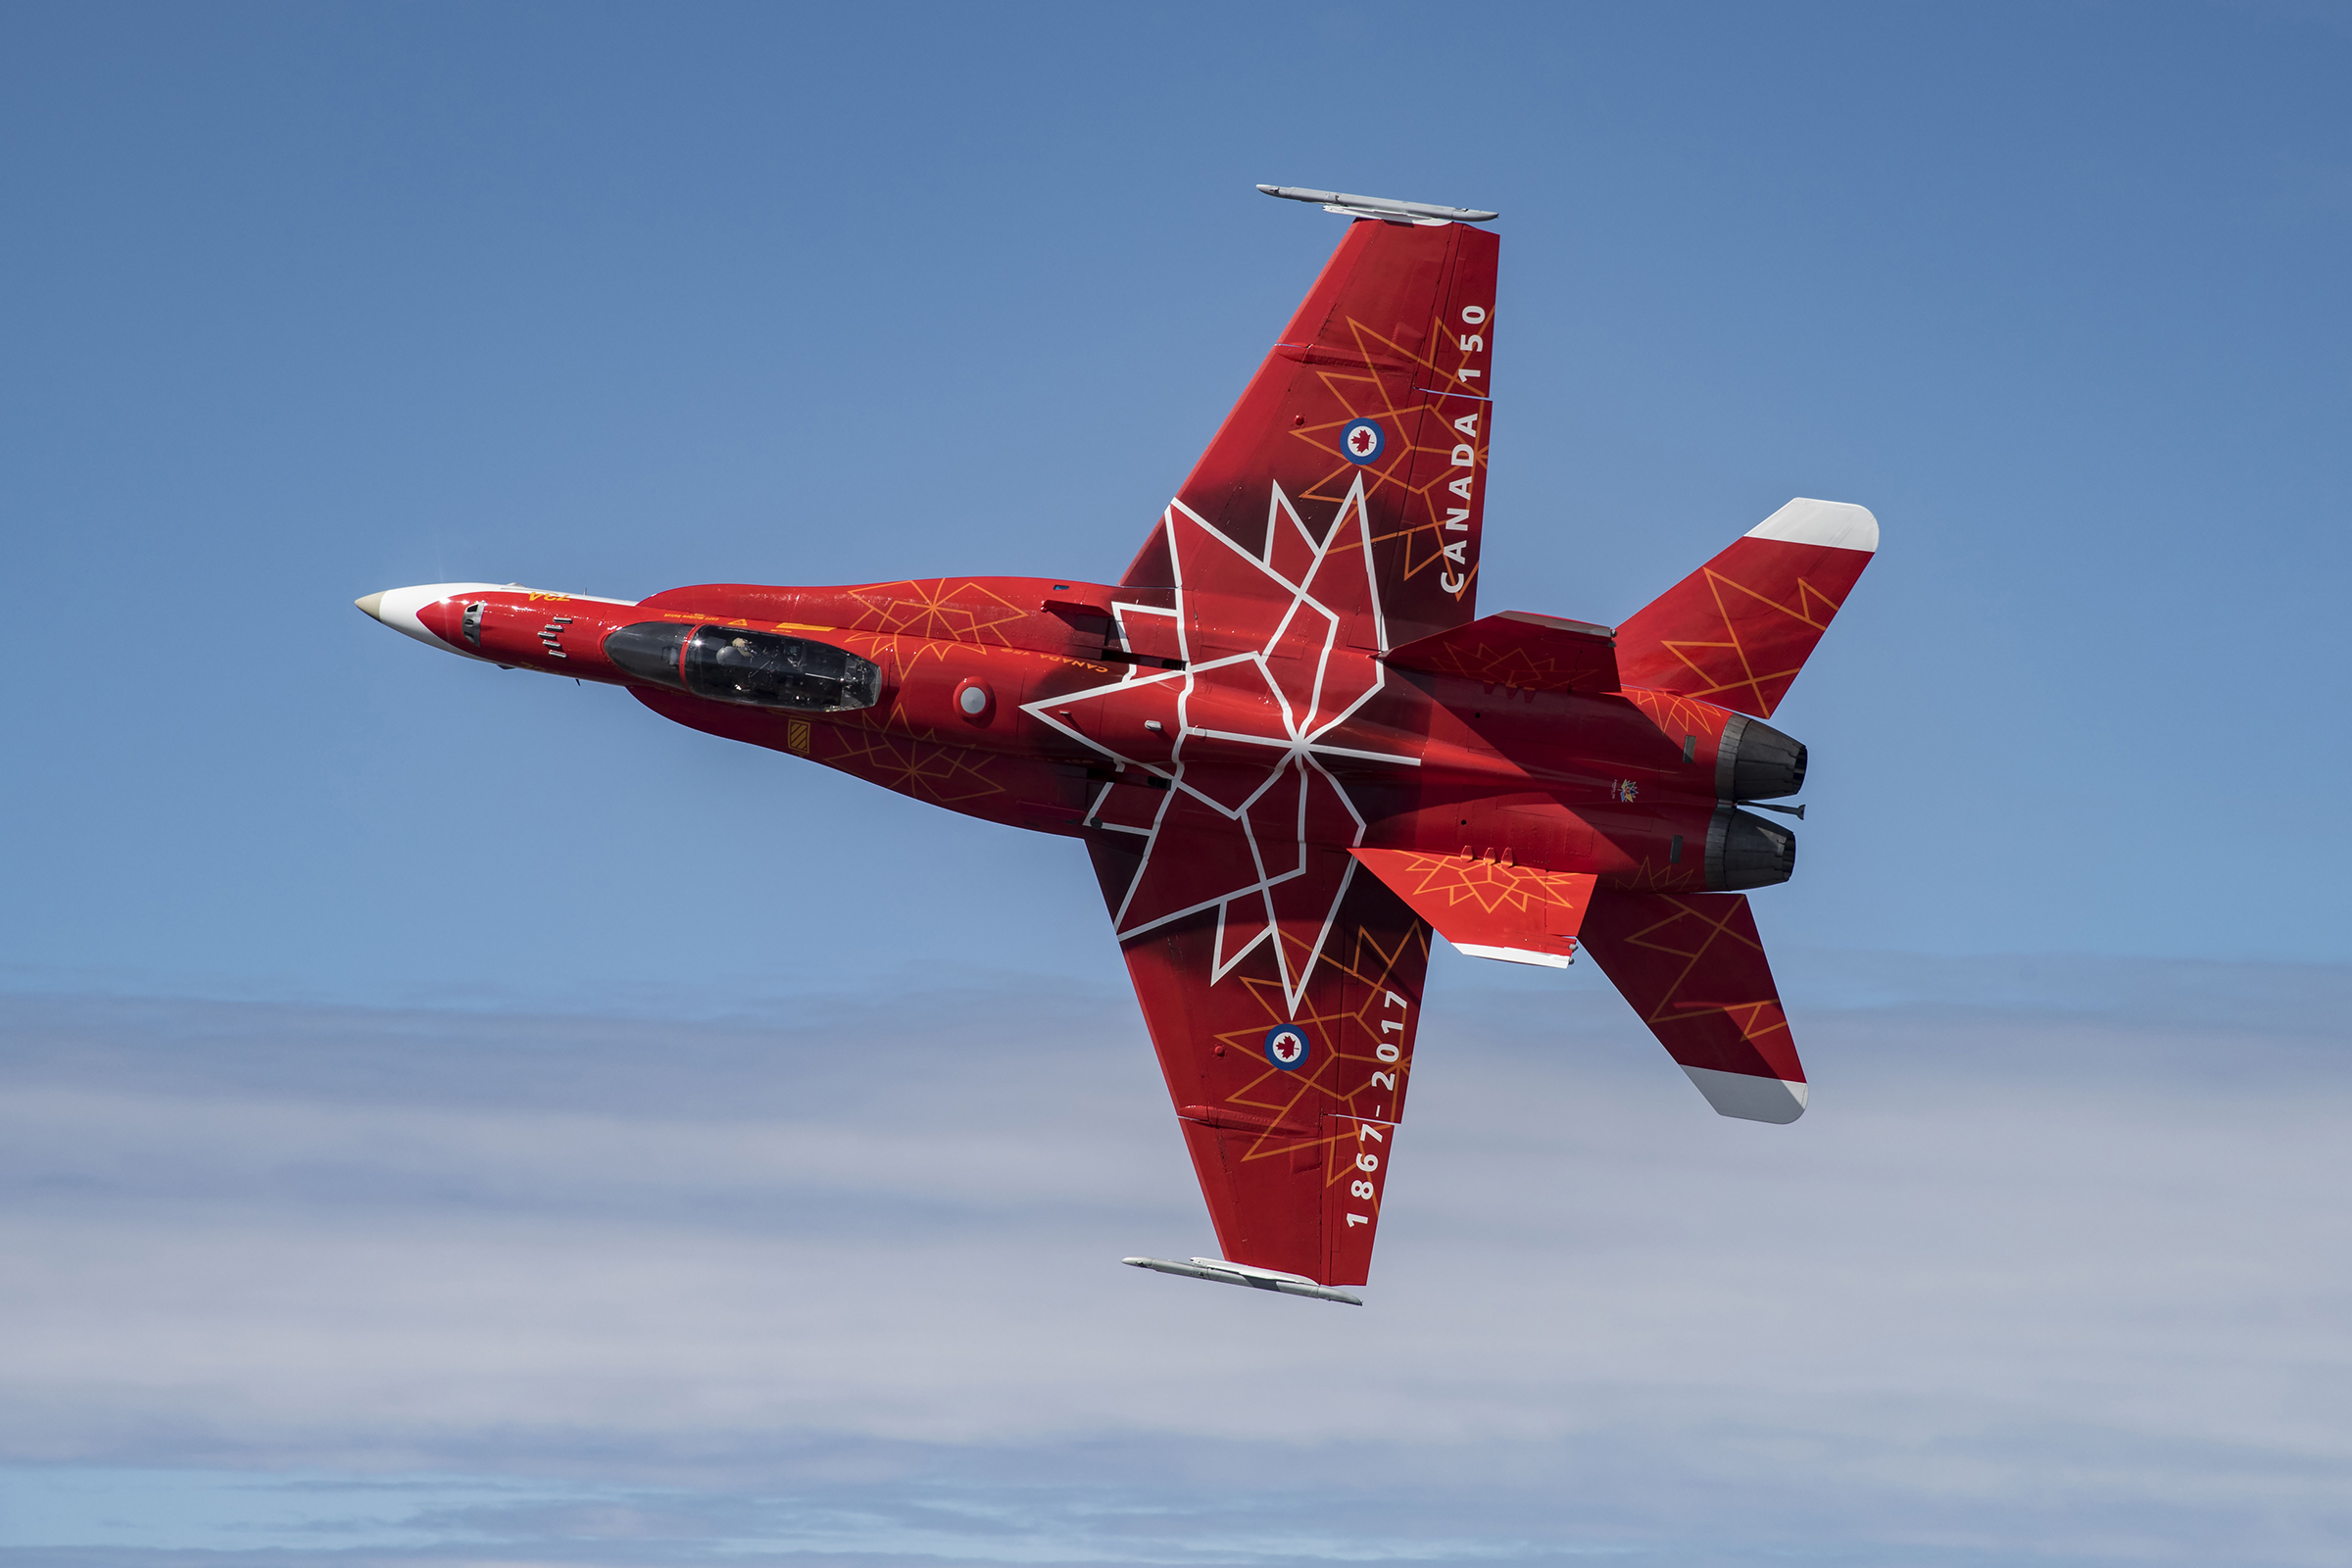 The design of the Royal Canadian Air Force's 2017 CF-18 Demonstration Hornet, commemorating the 150th anniversary of Canadian Confederation, inspired the design of Canada's 2018 Olympic bobsleigh and skeleton sleds. PHOTO: Corporal Manuela Berger, CK01-2017-0278-009